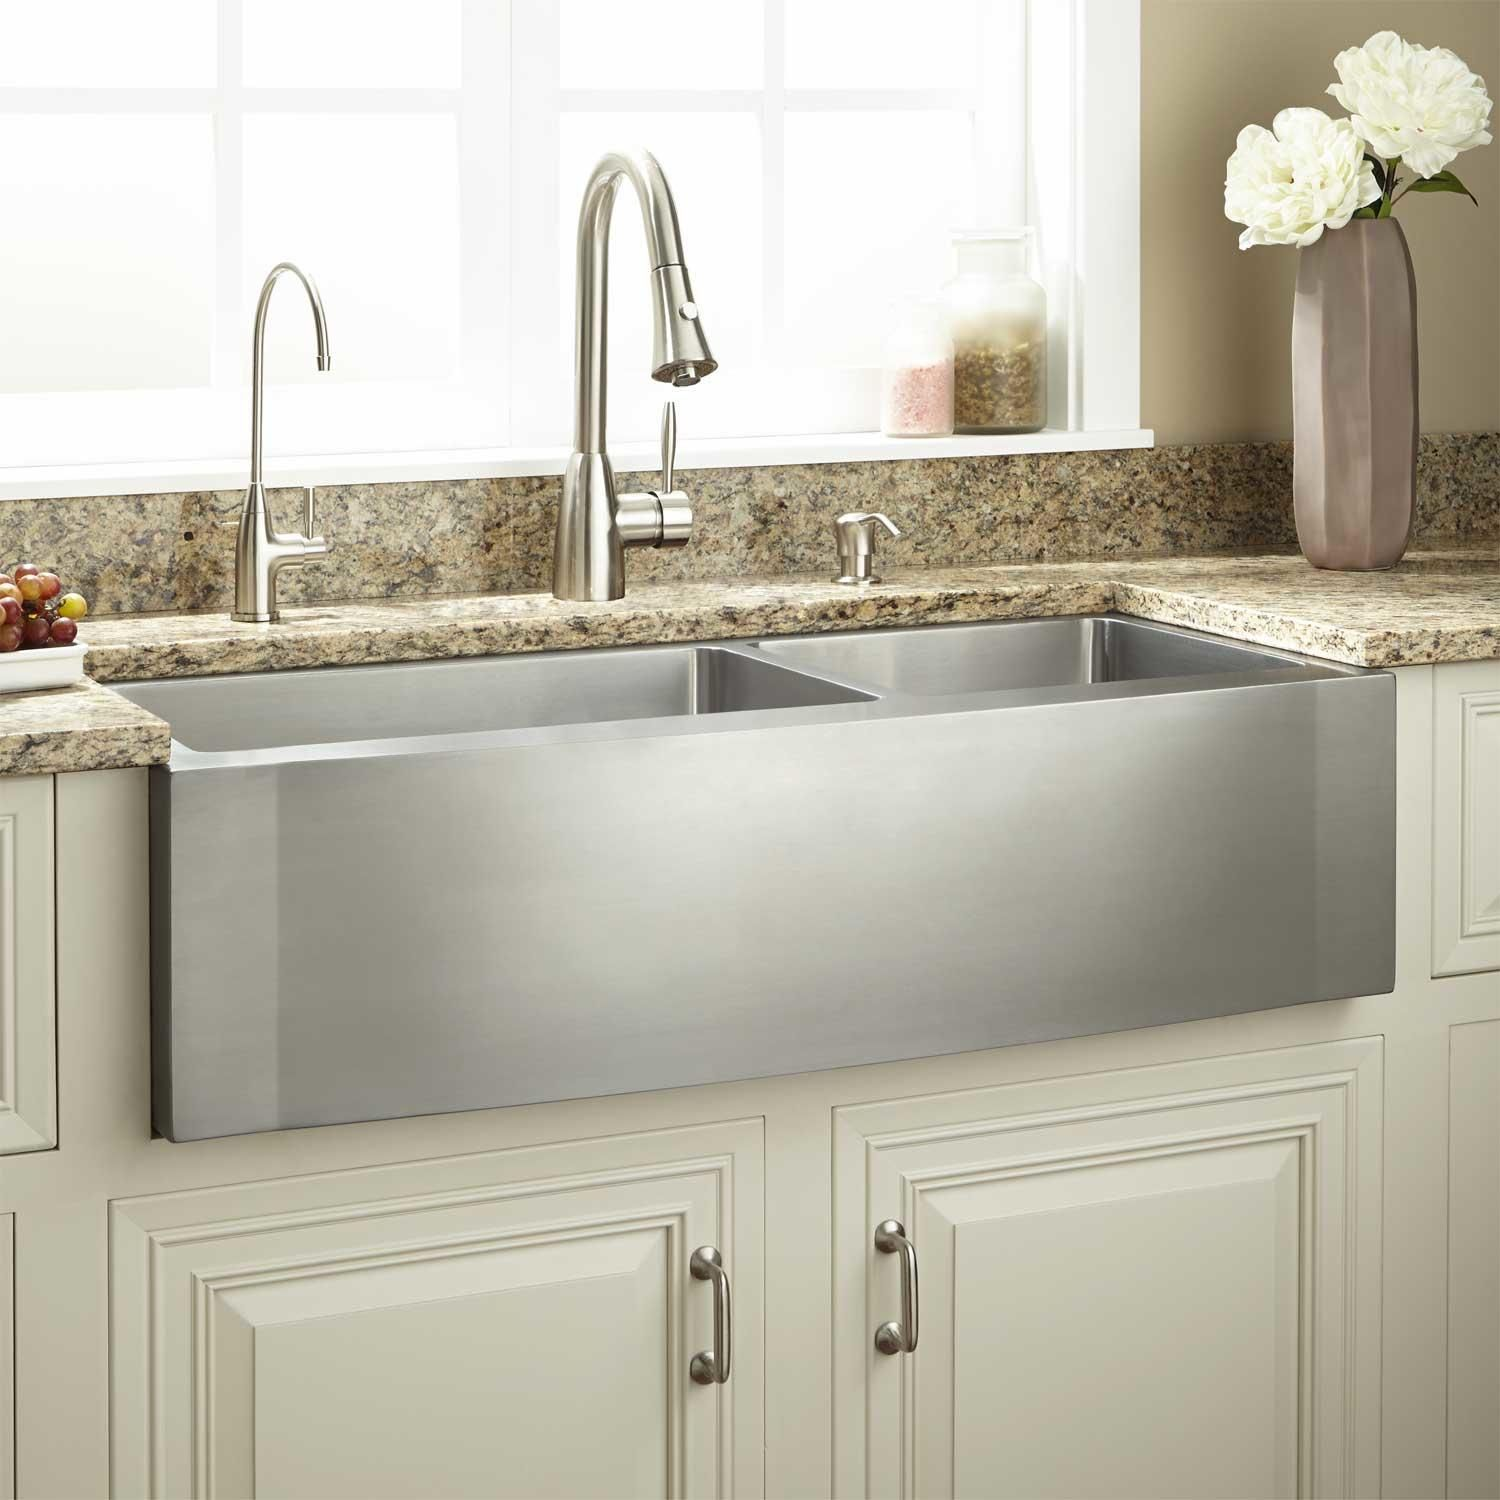 39 Optimum 60 40 Offset Double Bowl Stainless Steel Farmhouse Sink Wave Front